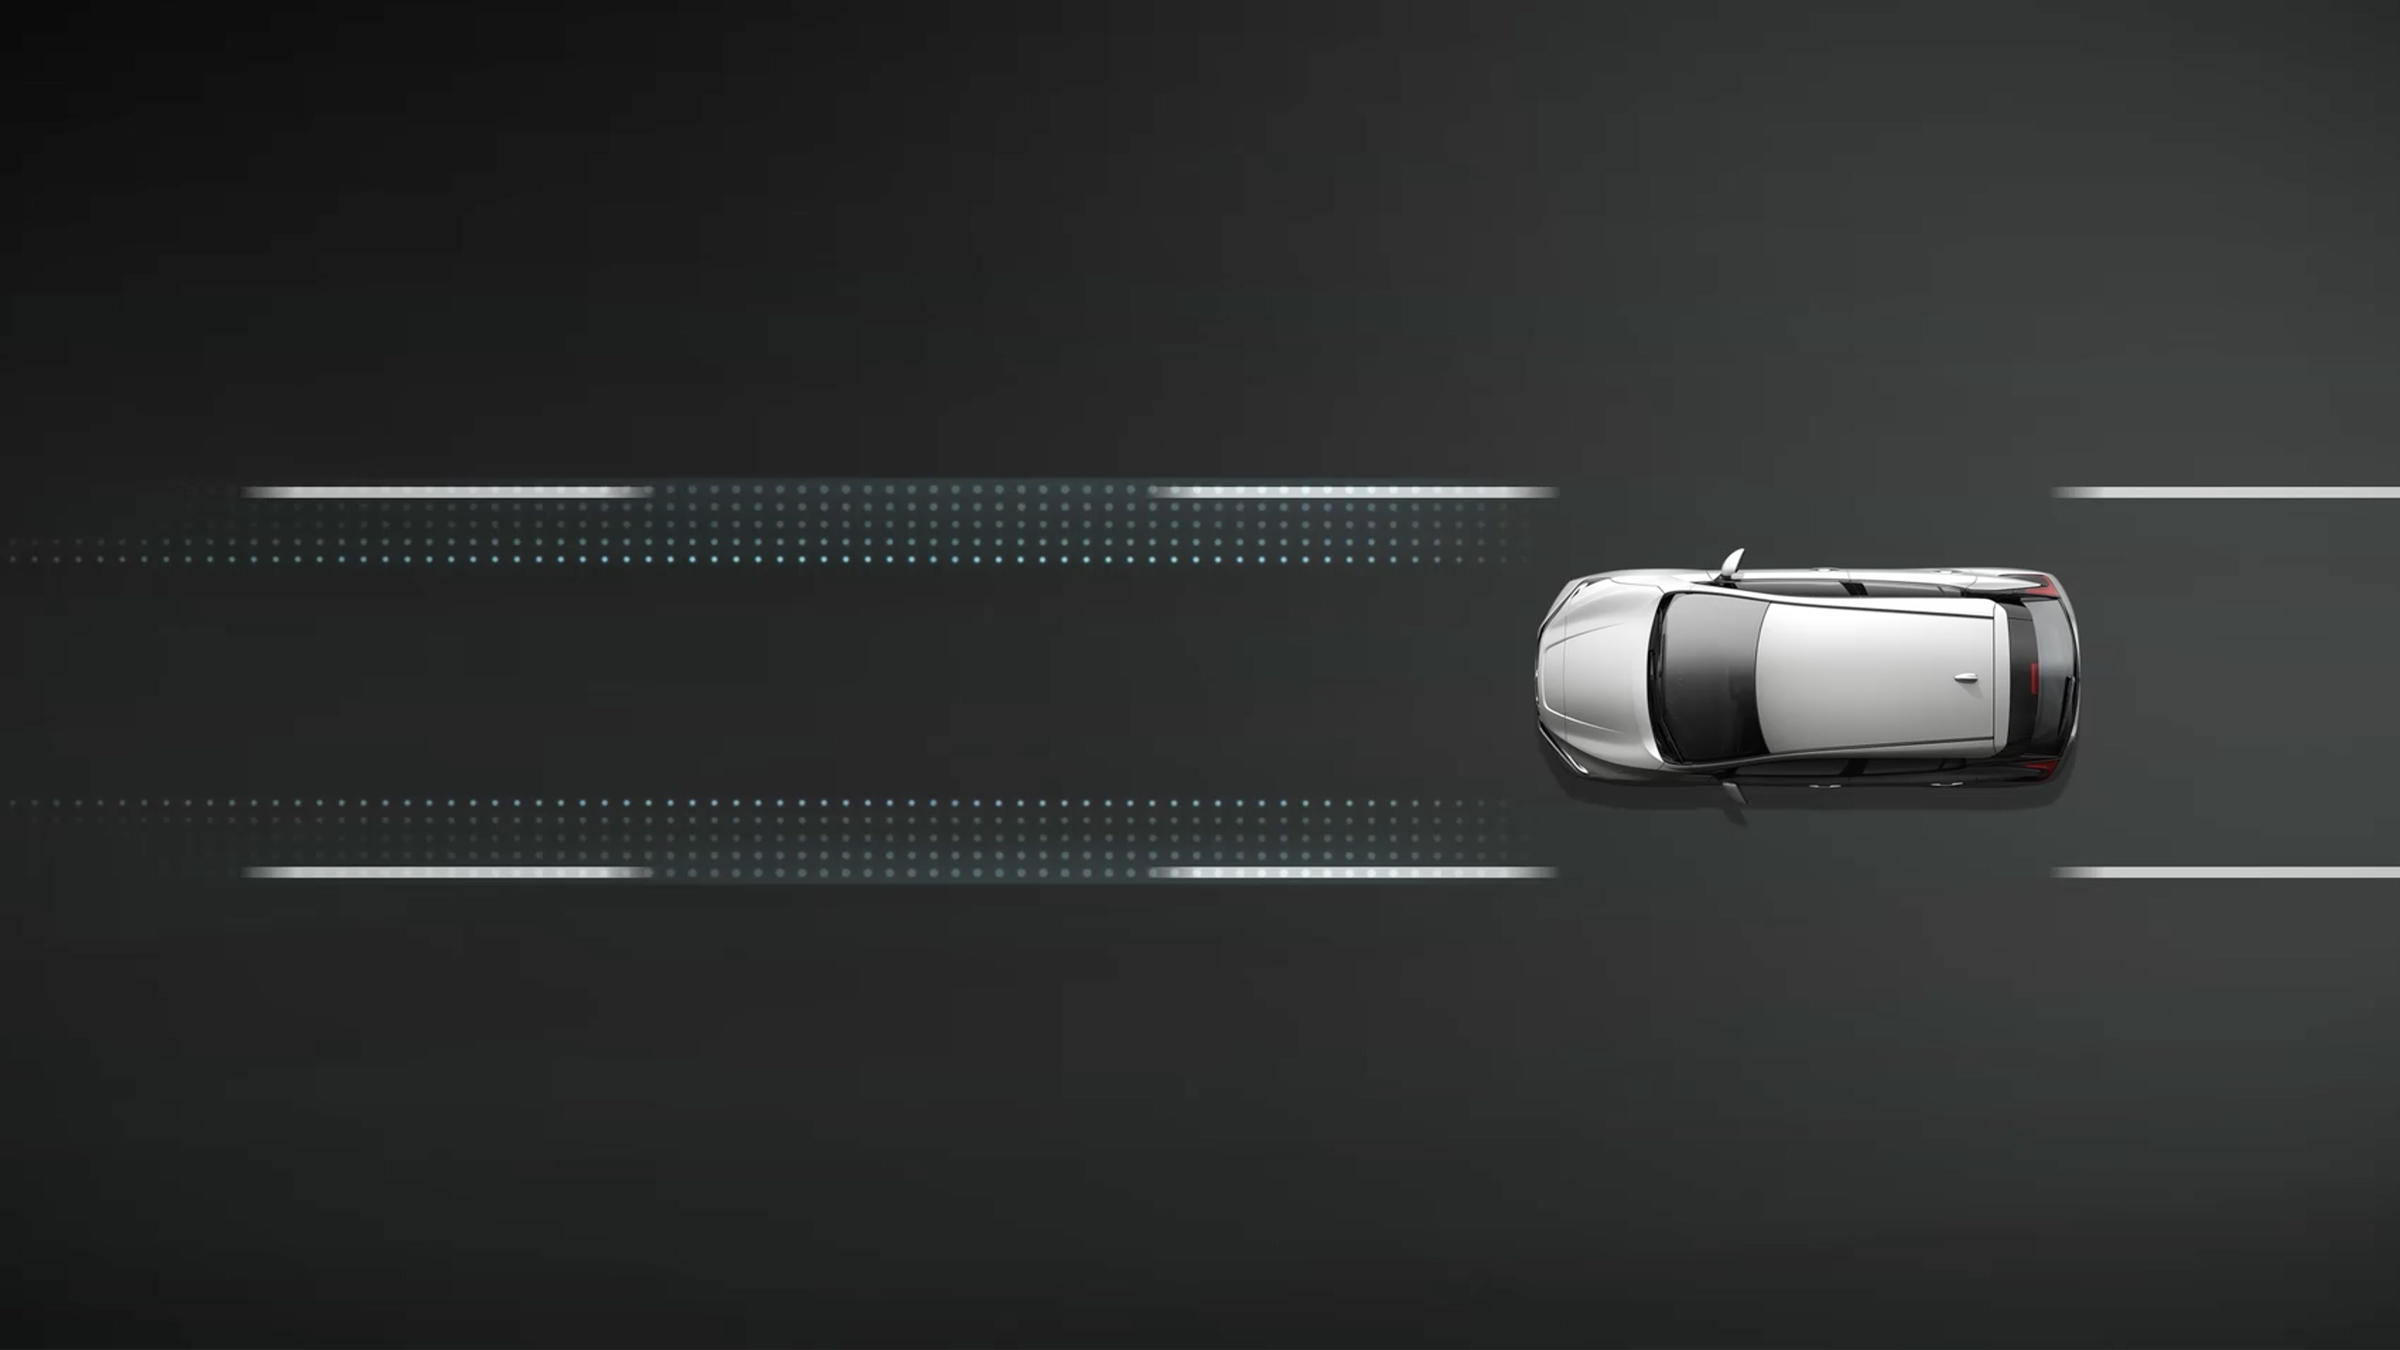 Intelligent forward collision warning illustration